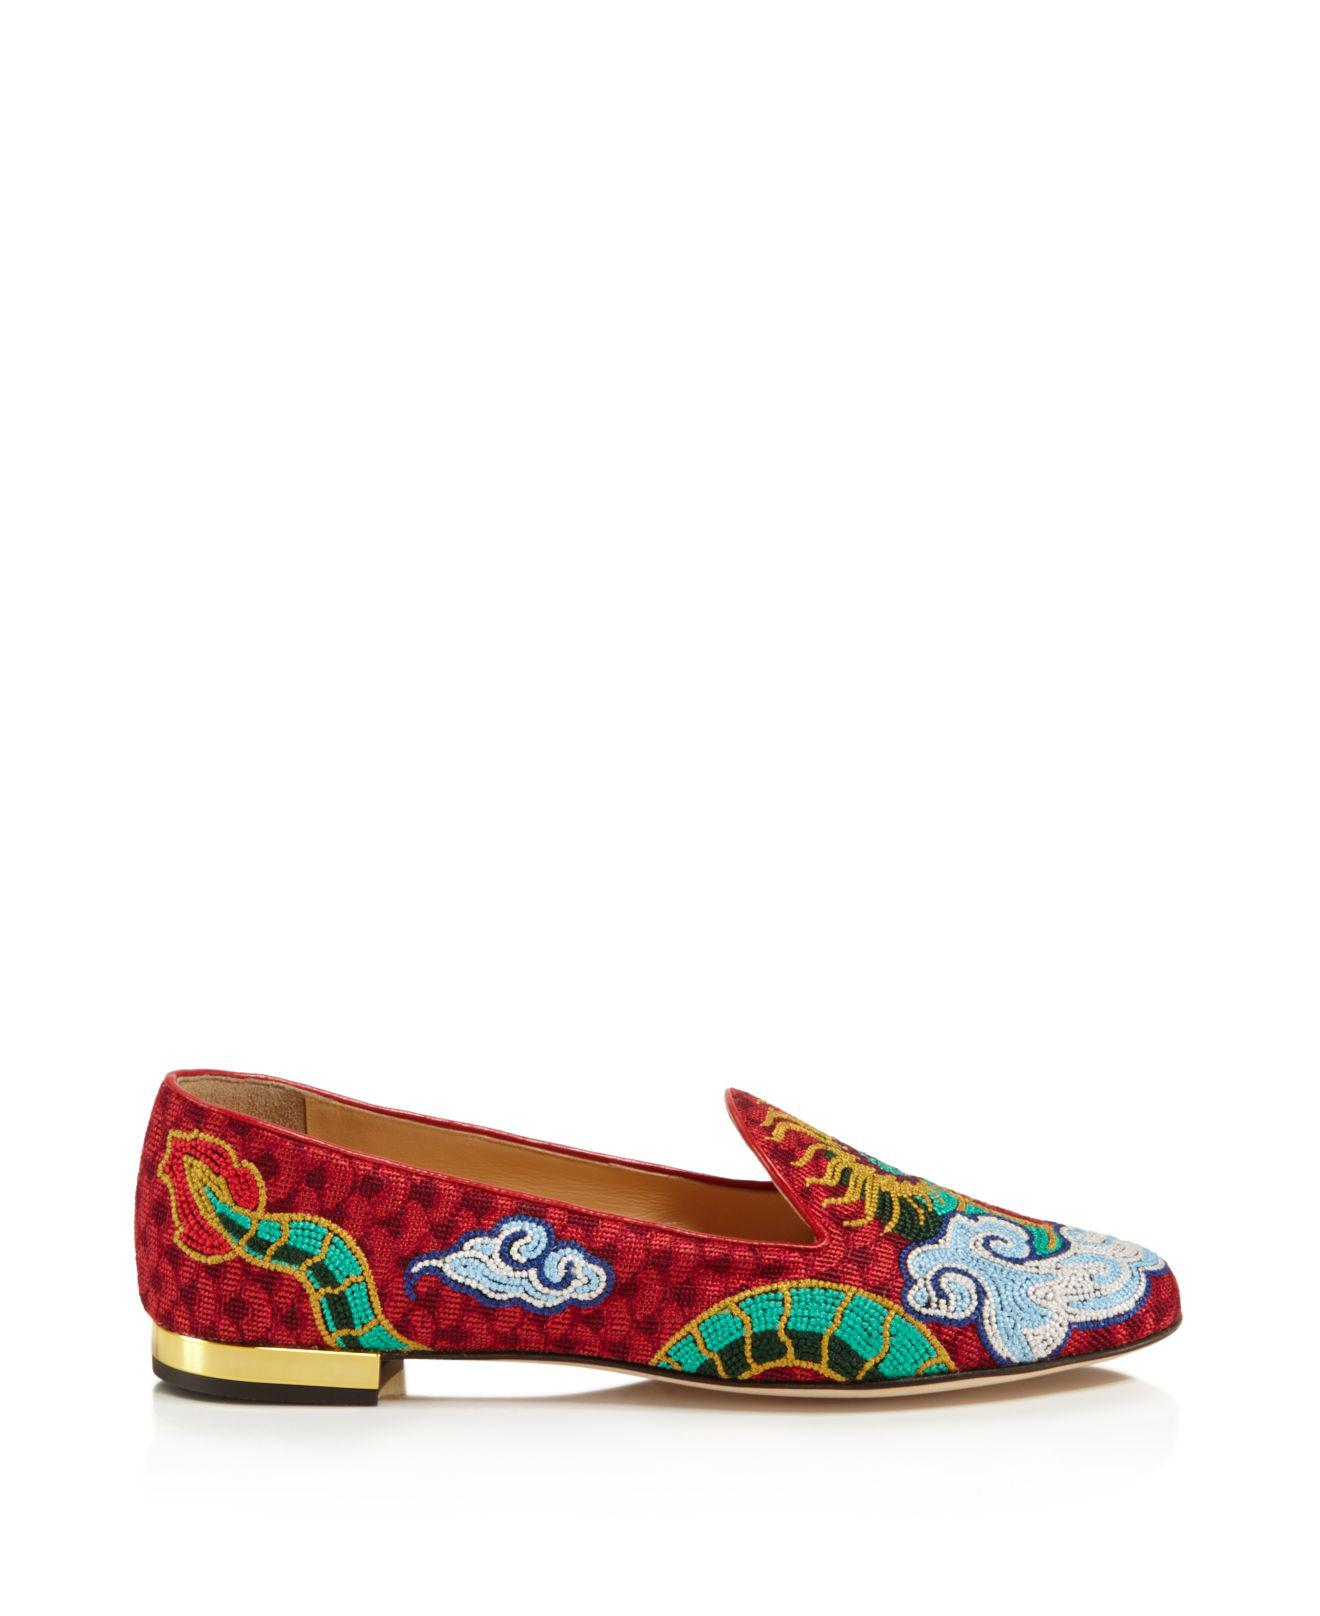 Charlotte Olympia Dragon Smoking Slipper Flats